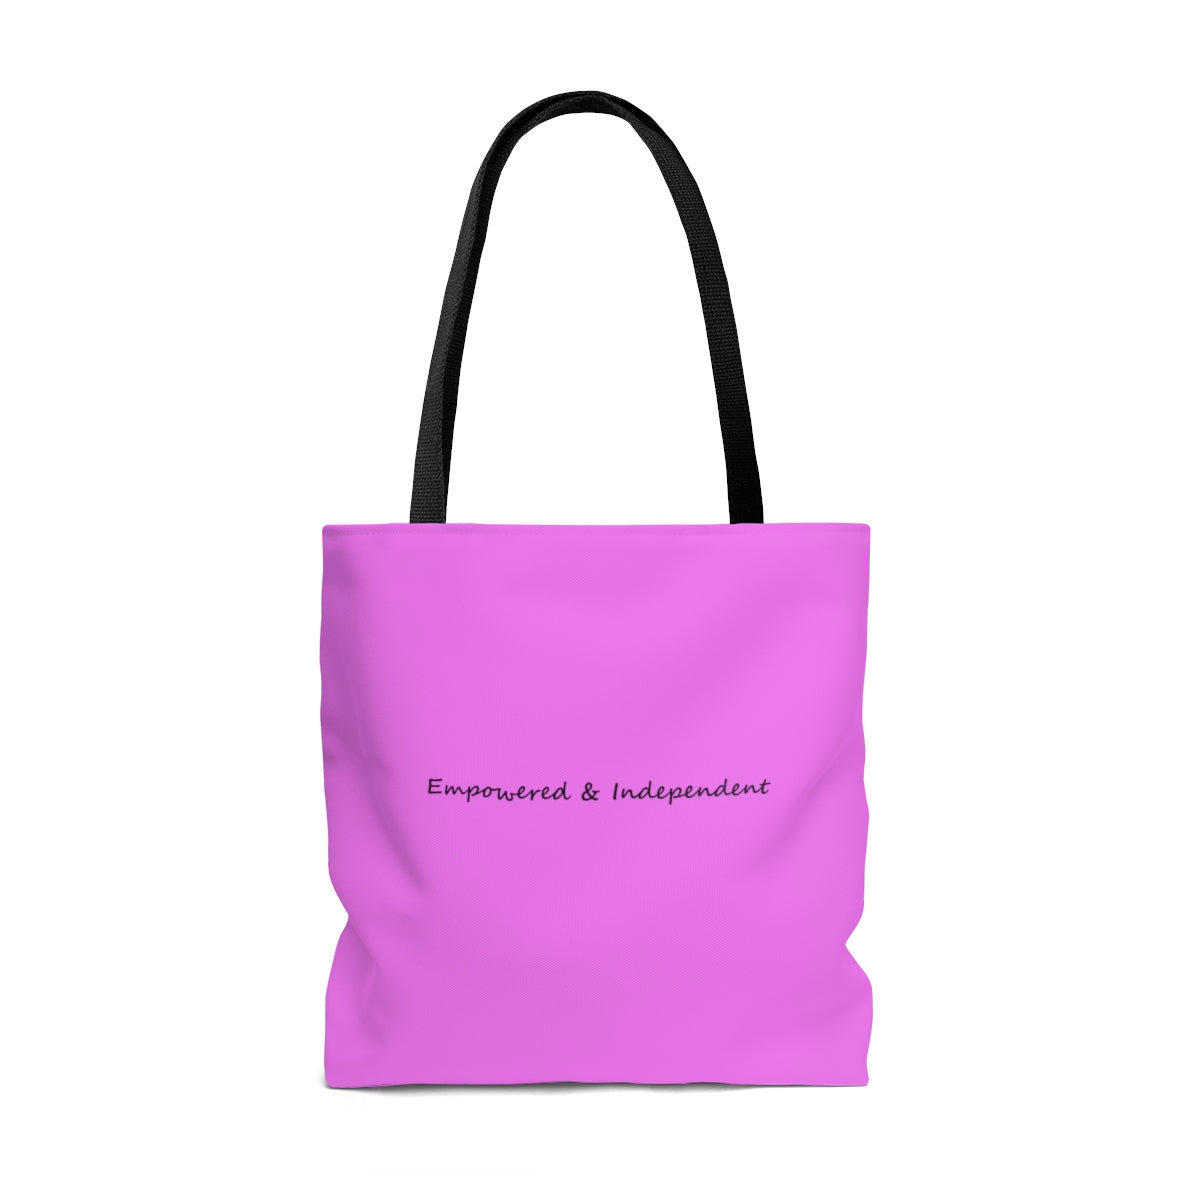 Solo Travel Woman Tote Bag - Solo Travel Woman